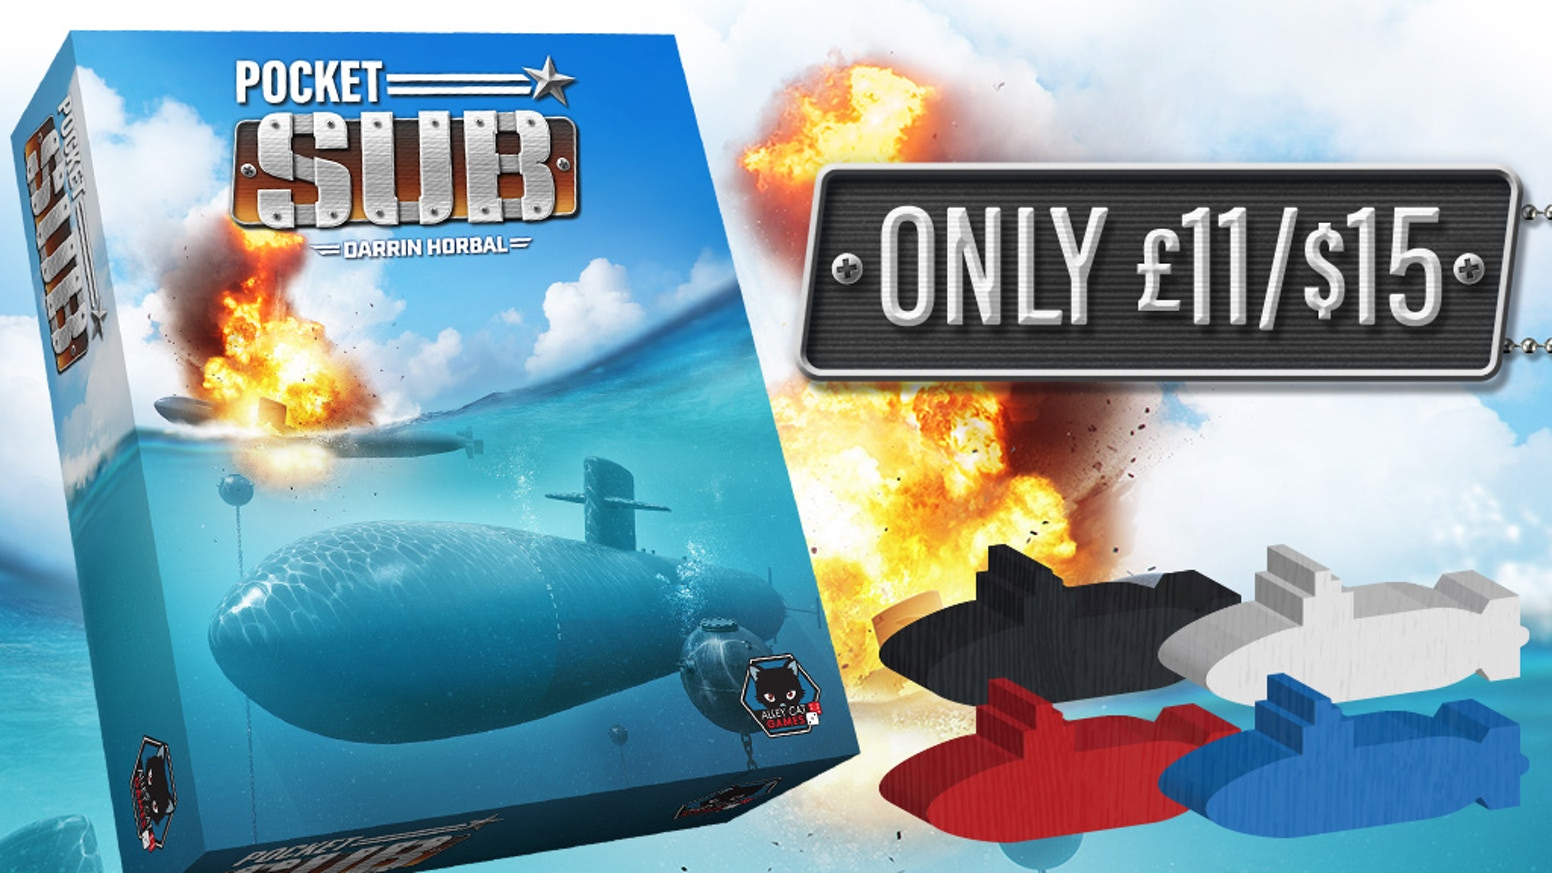 Strategic, quick, and with an awesome submarine theme. Pocket Sub brings a brain burner game, into a small handy sized box!